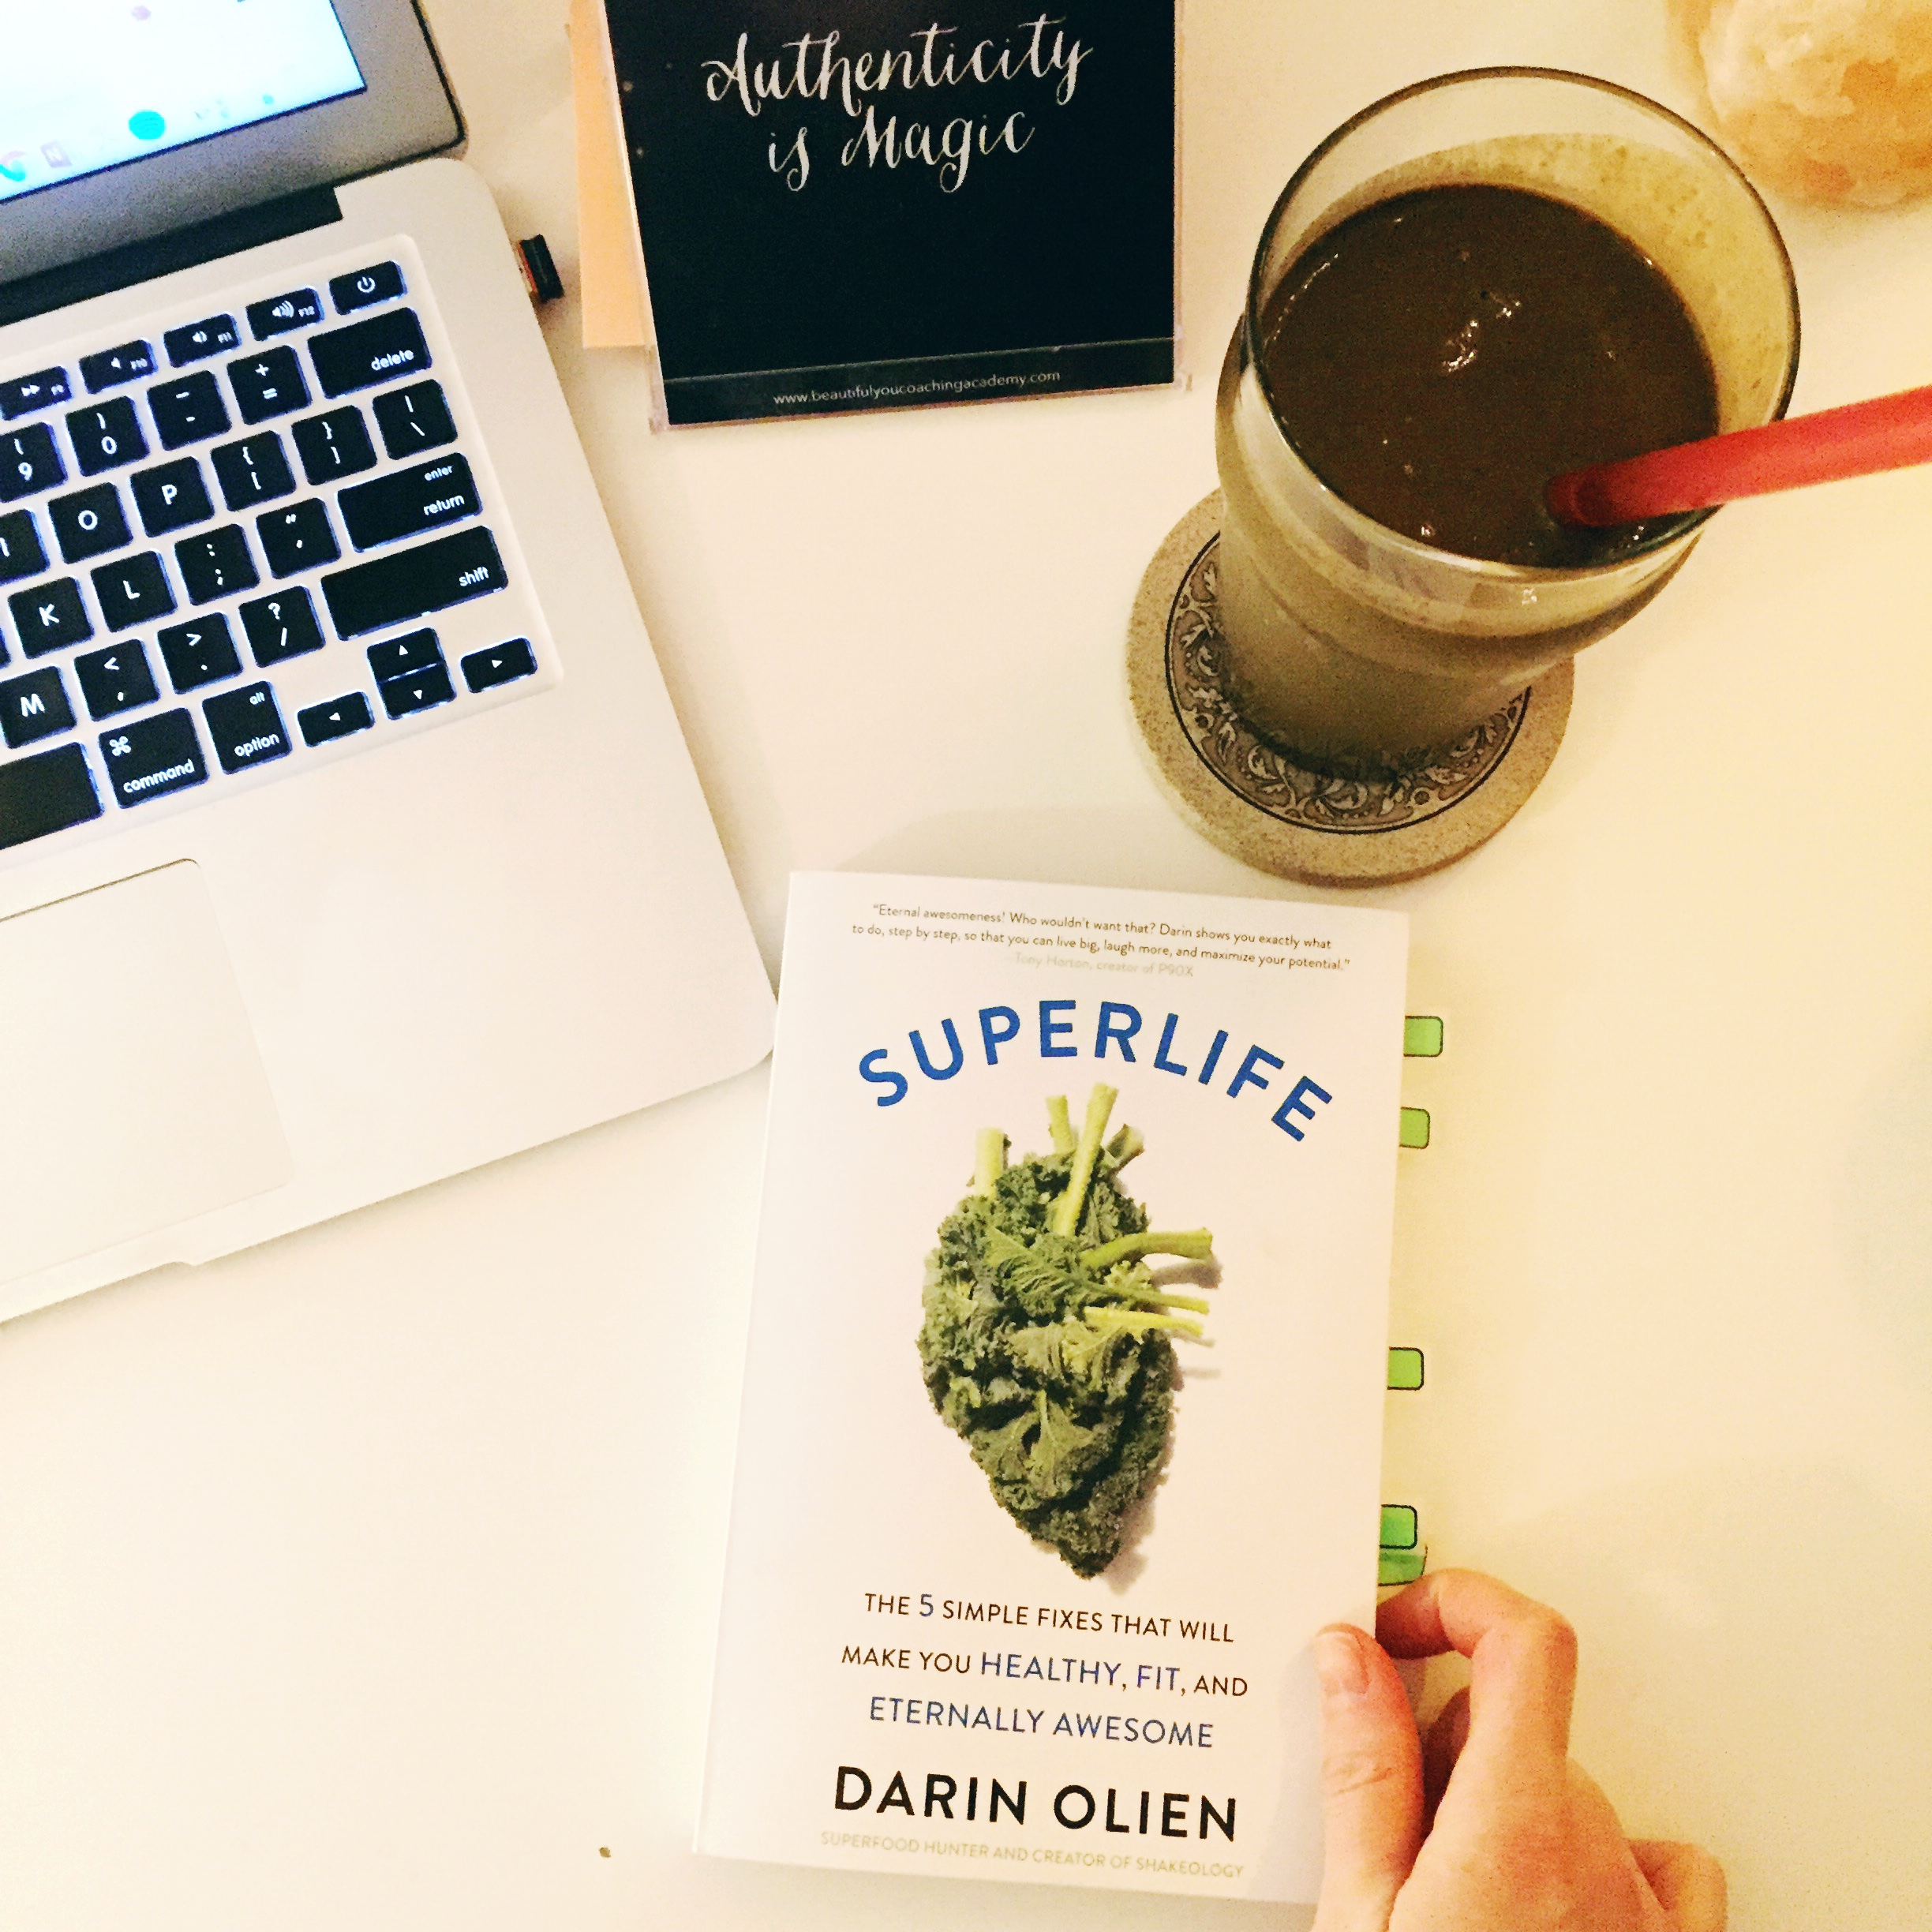 Here I am being a total SuperLife cliche - drinking my superfoods and writing this review!